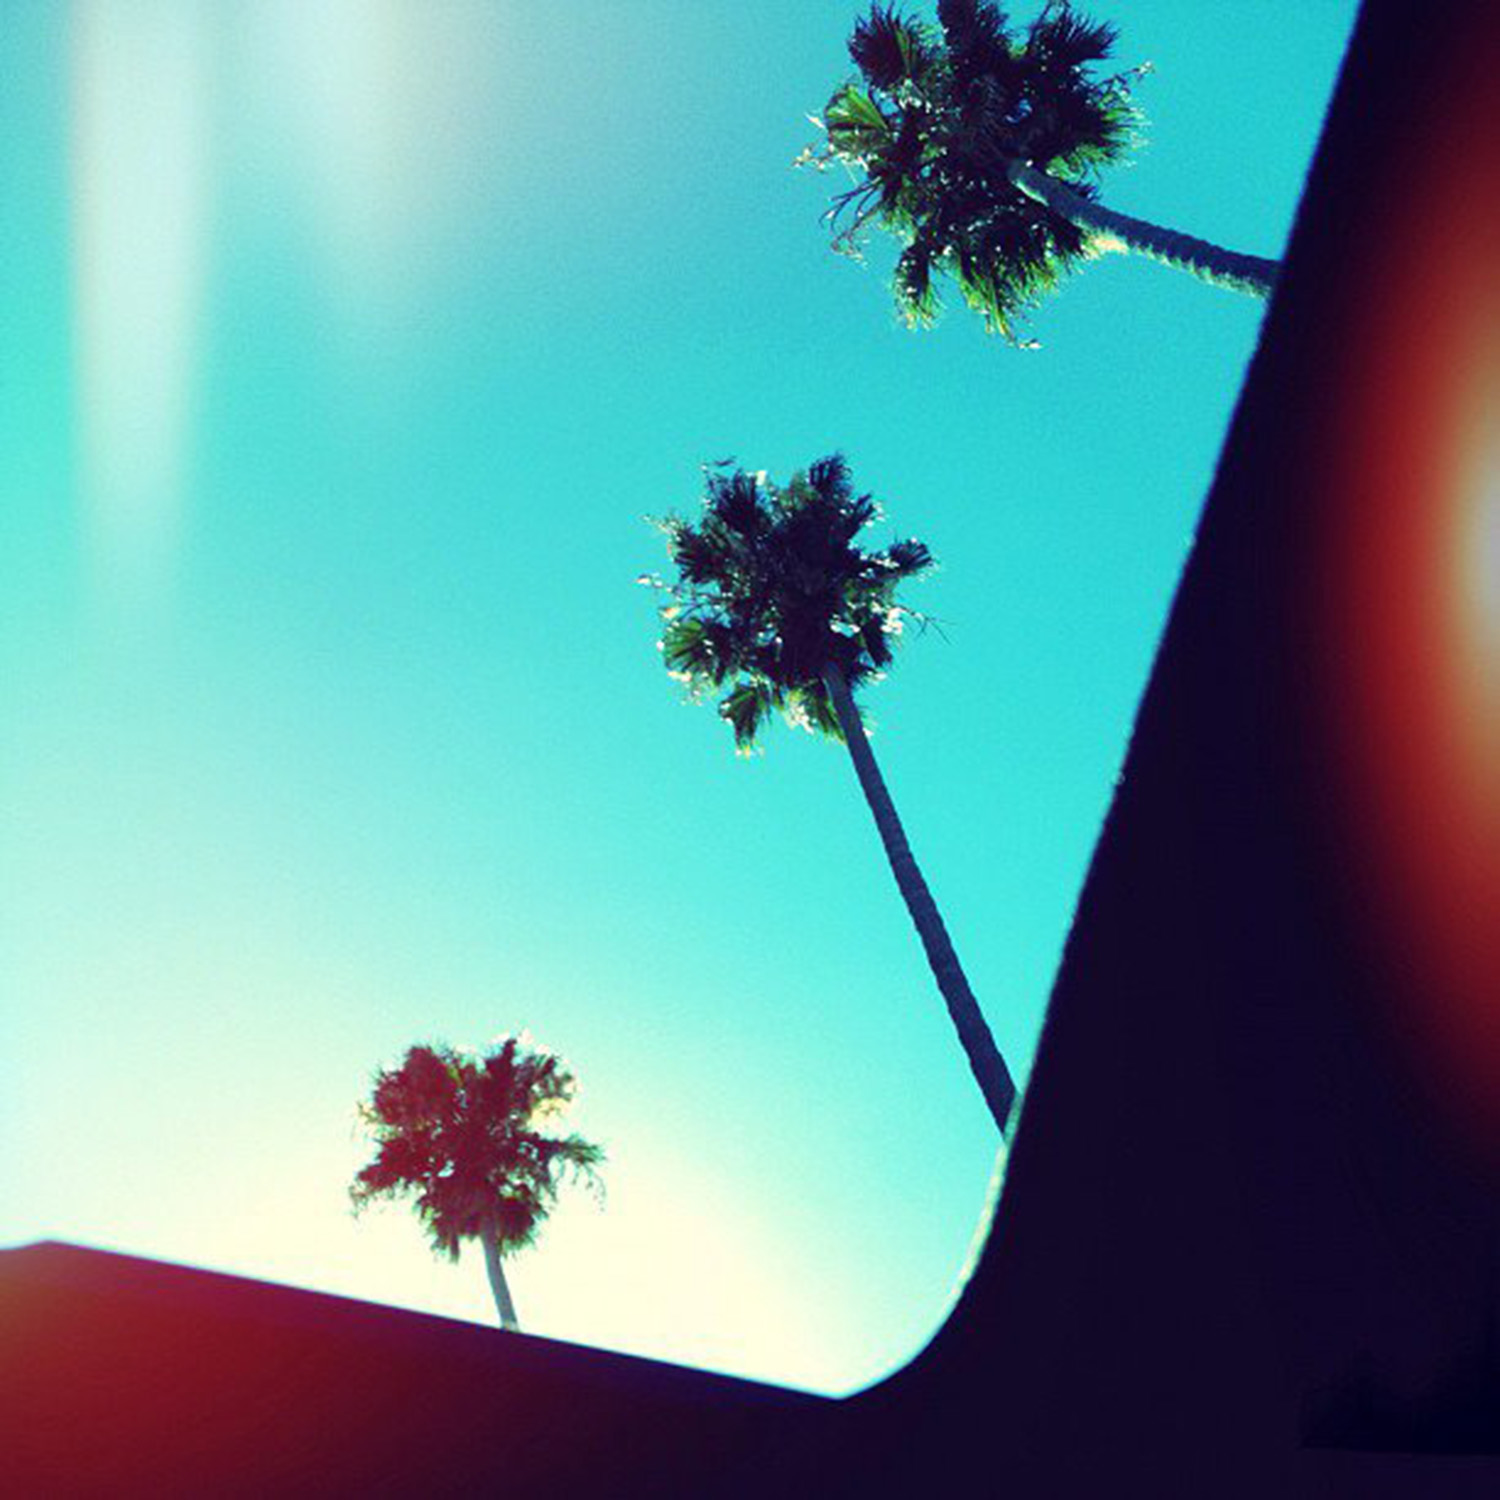 Looking up at the tall palm trees and clear blue sky, July 2012